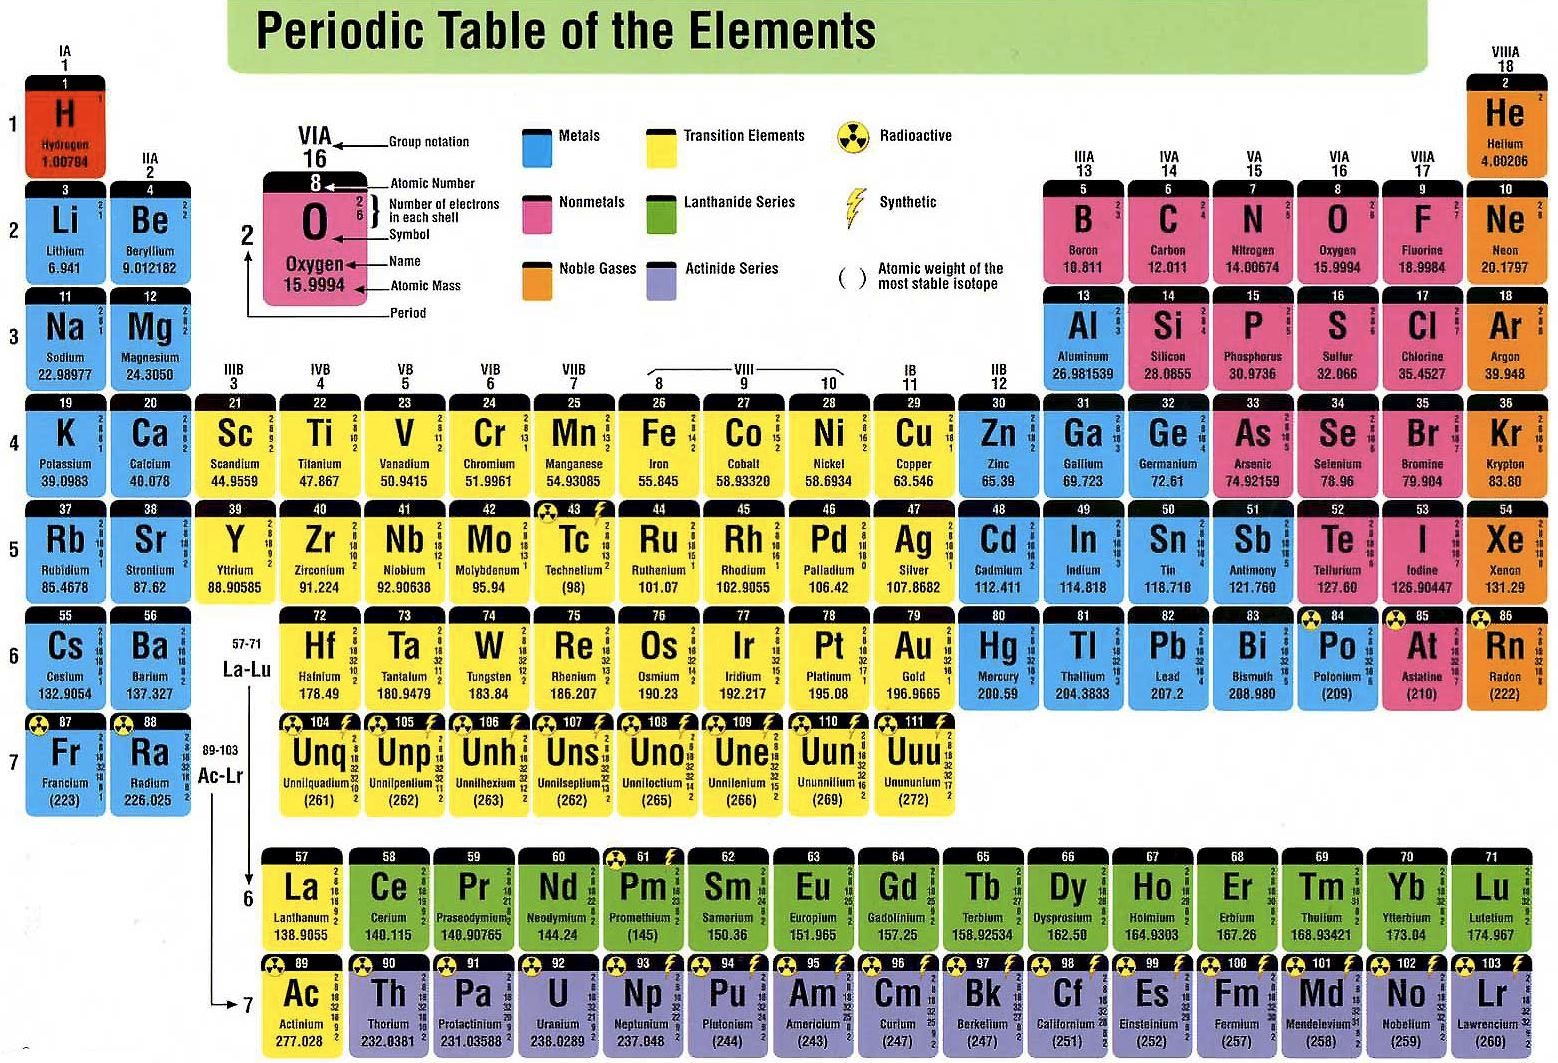 Periodic table of elements for 110 element in periodic table